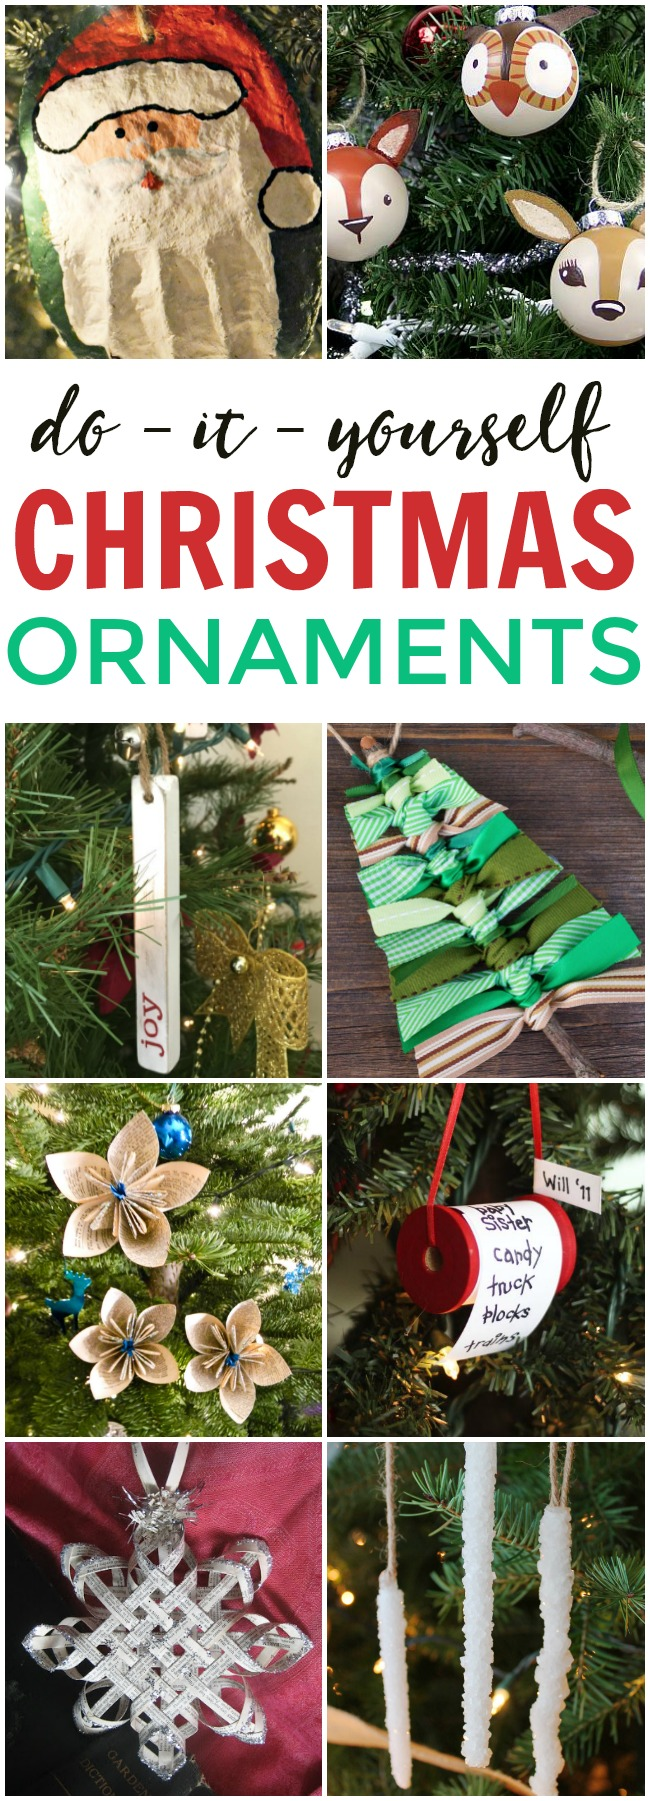 Give your Christmas tree a heartfelt touch of homemade this holiday season by decorating with these gorgeous DIY Christmas ornaments. #DIY #ChristmasOrnaments #Christmas #Ornaments